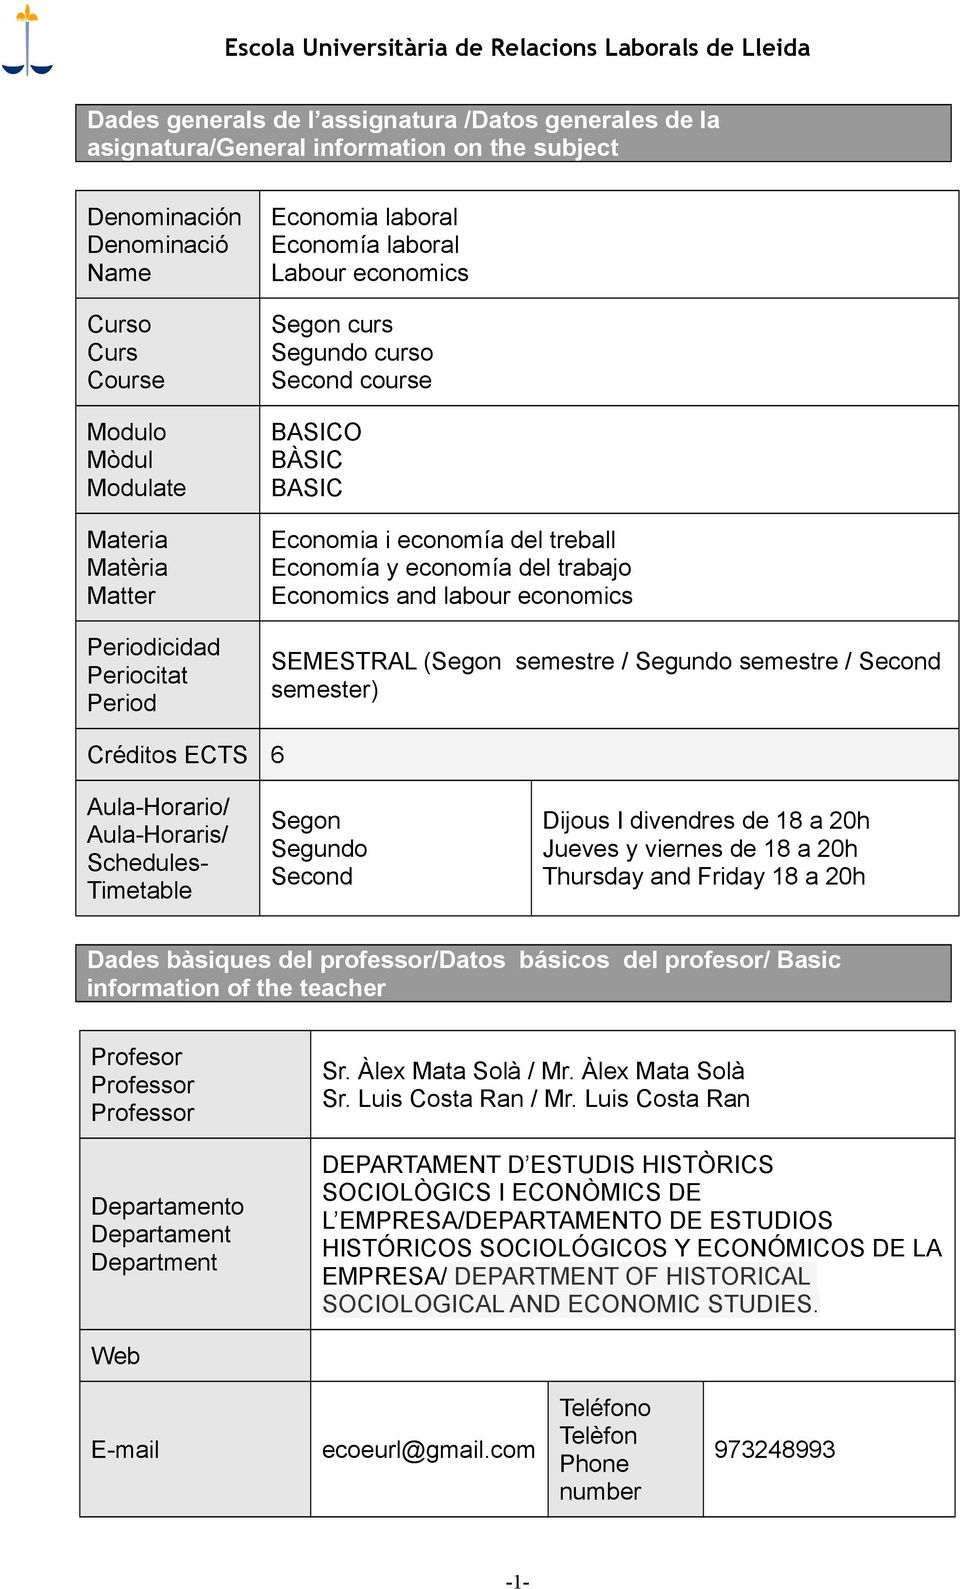 trabajo Economics and labour economics SEMESTRAL (Segon semestre / Segundo semestre / Second semester) Créditos ECTS 6 Aula-Horario/ Aula-Horaris/ Schedules- Timetable Segon Segundo Second Dijous I